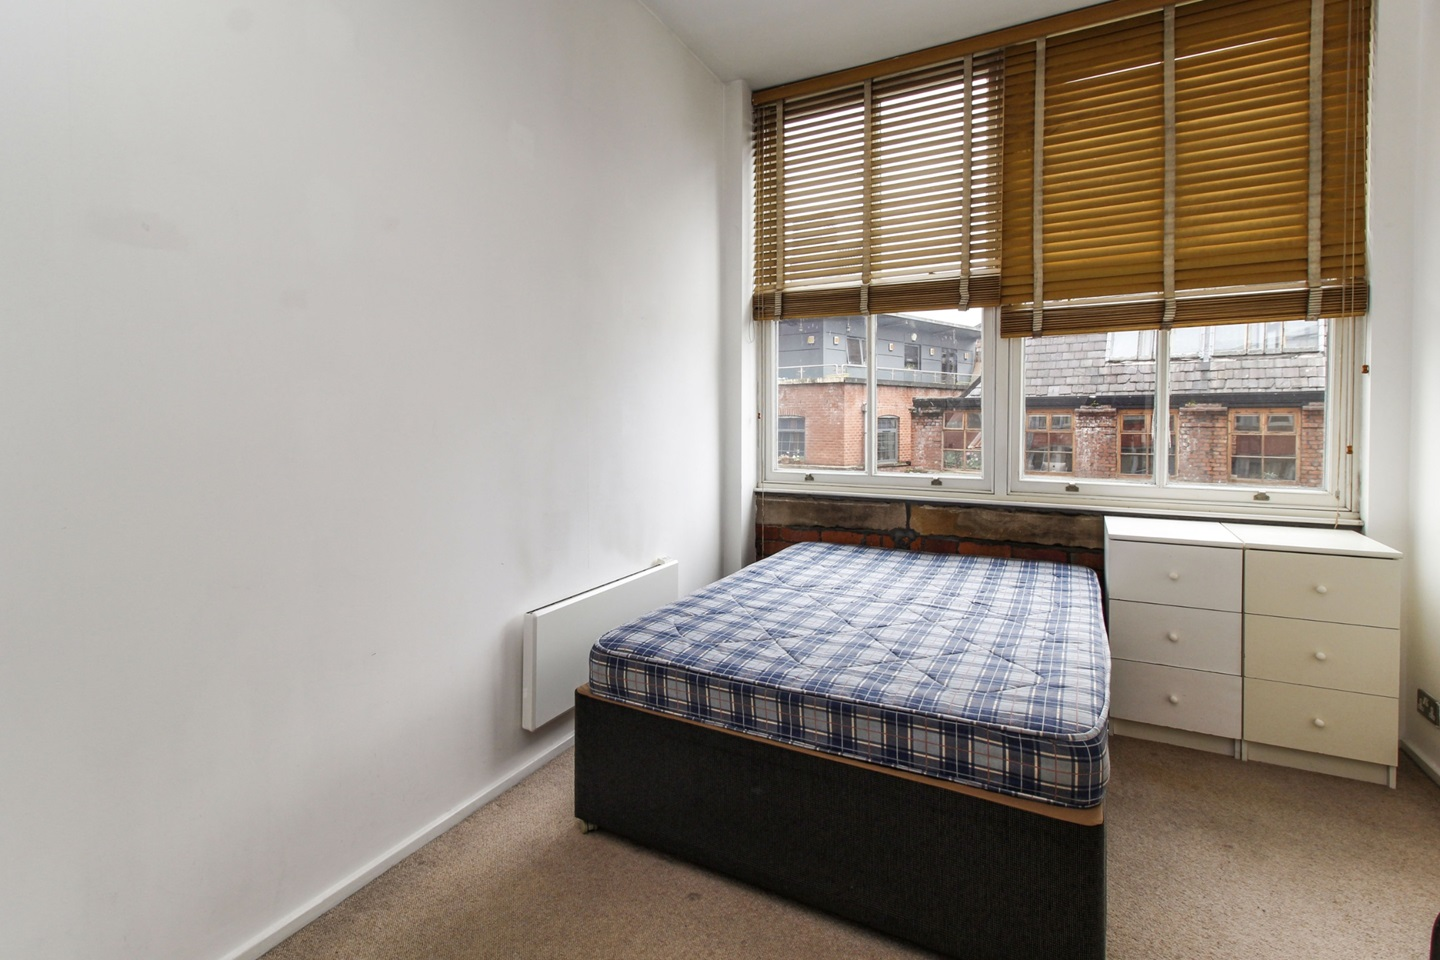 Manchester - 1 Bed Flat, Conran Building, M4 - To Rent Now ...